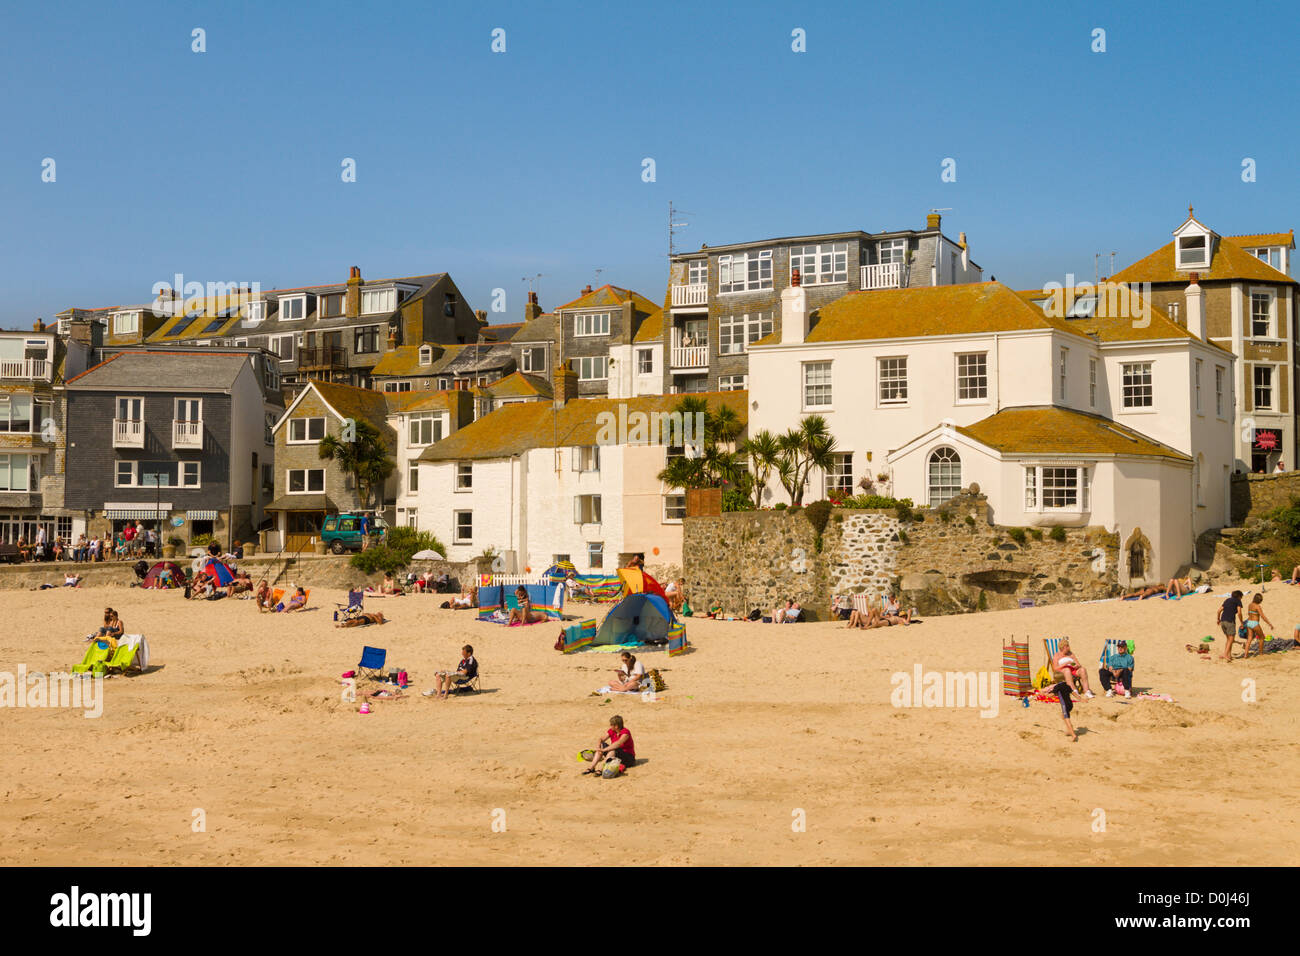 Holidaymakers on the beach at St Ives, Cornwall, England - Stock Image